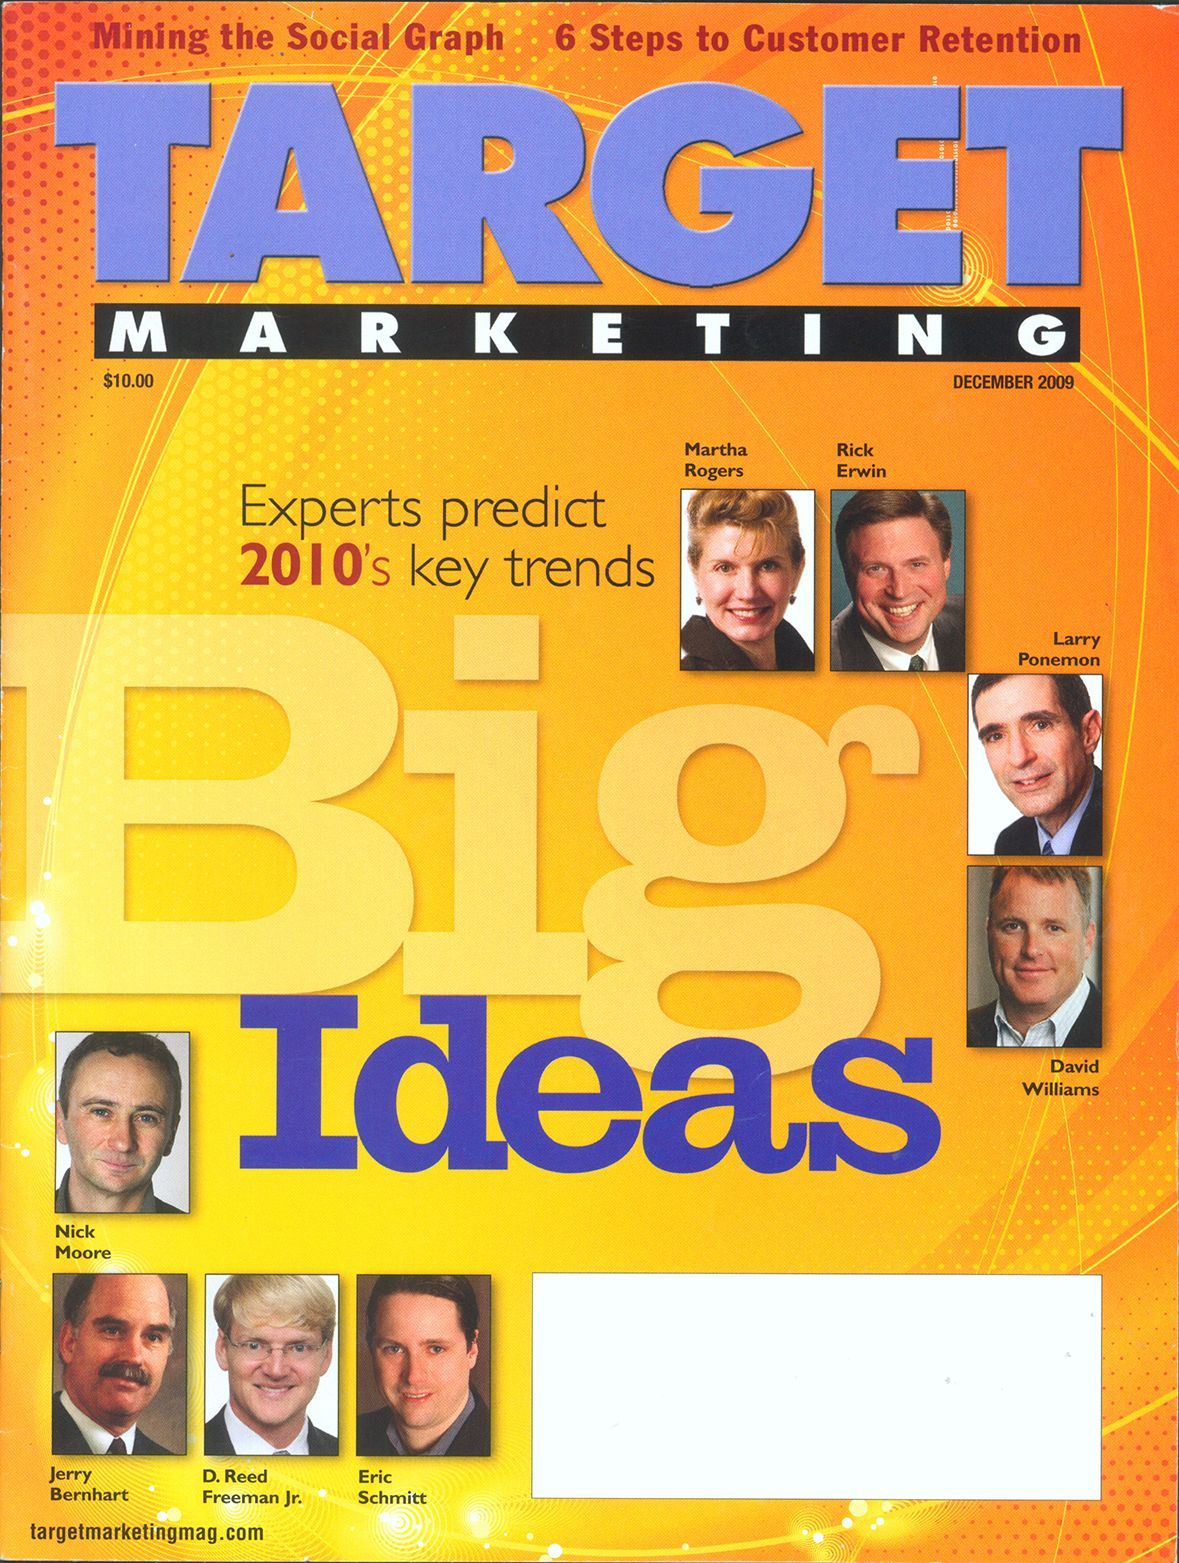 Jerry Bernhart on the cover of Target Marketing